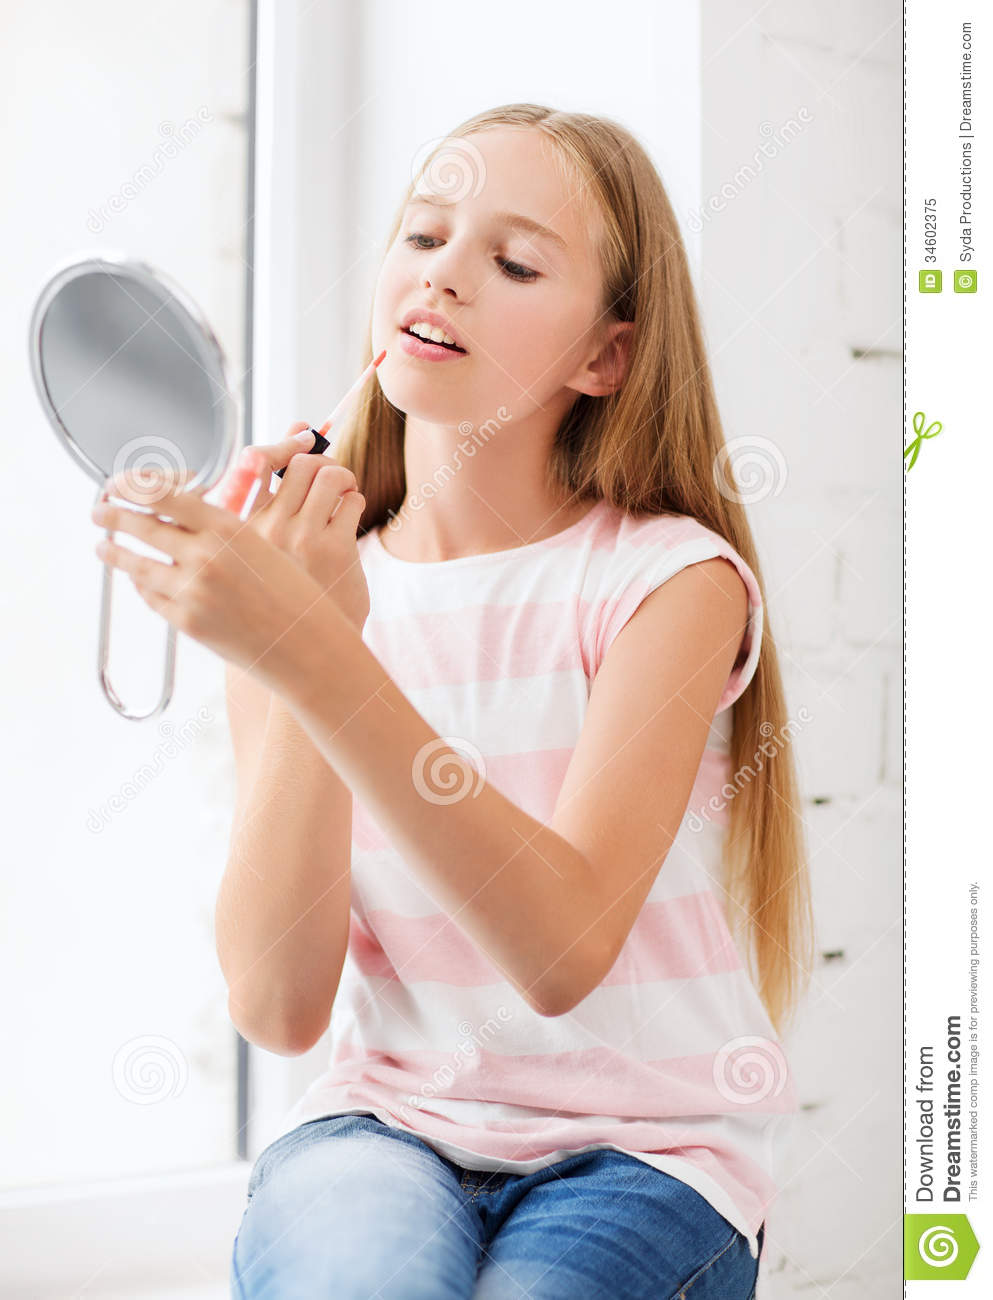 Https Www Dreamstime Com Royalty Free Stock Photo Teenage Girl Lip Gloss Mirror Adolescence Beauty Makeup Happy People Concept Image34602375